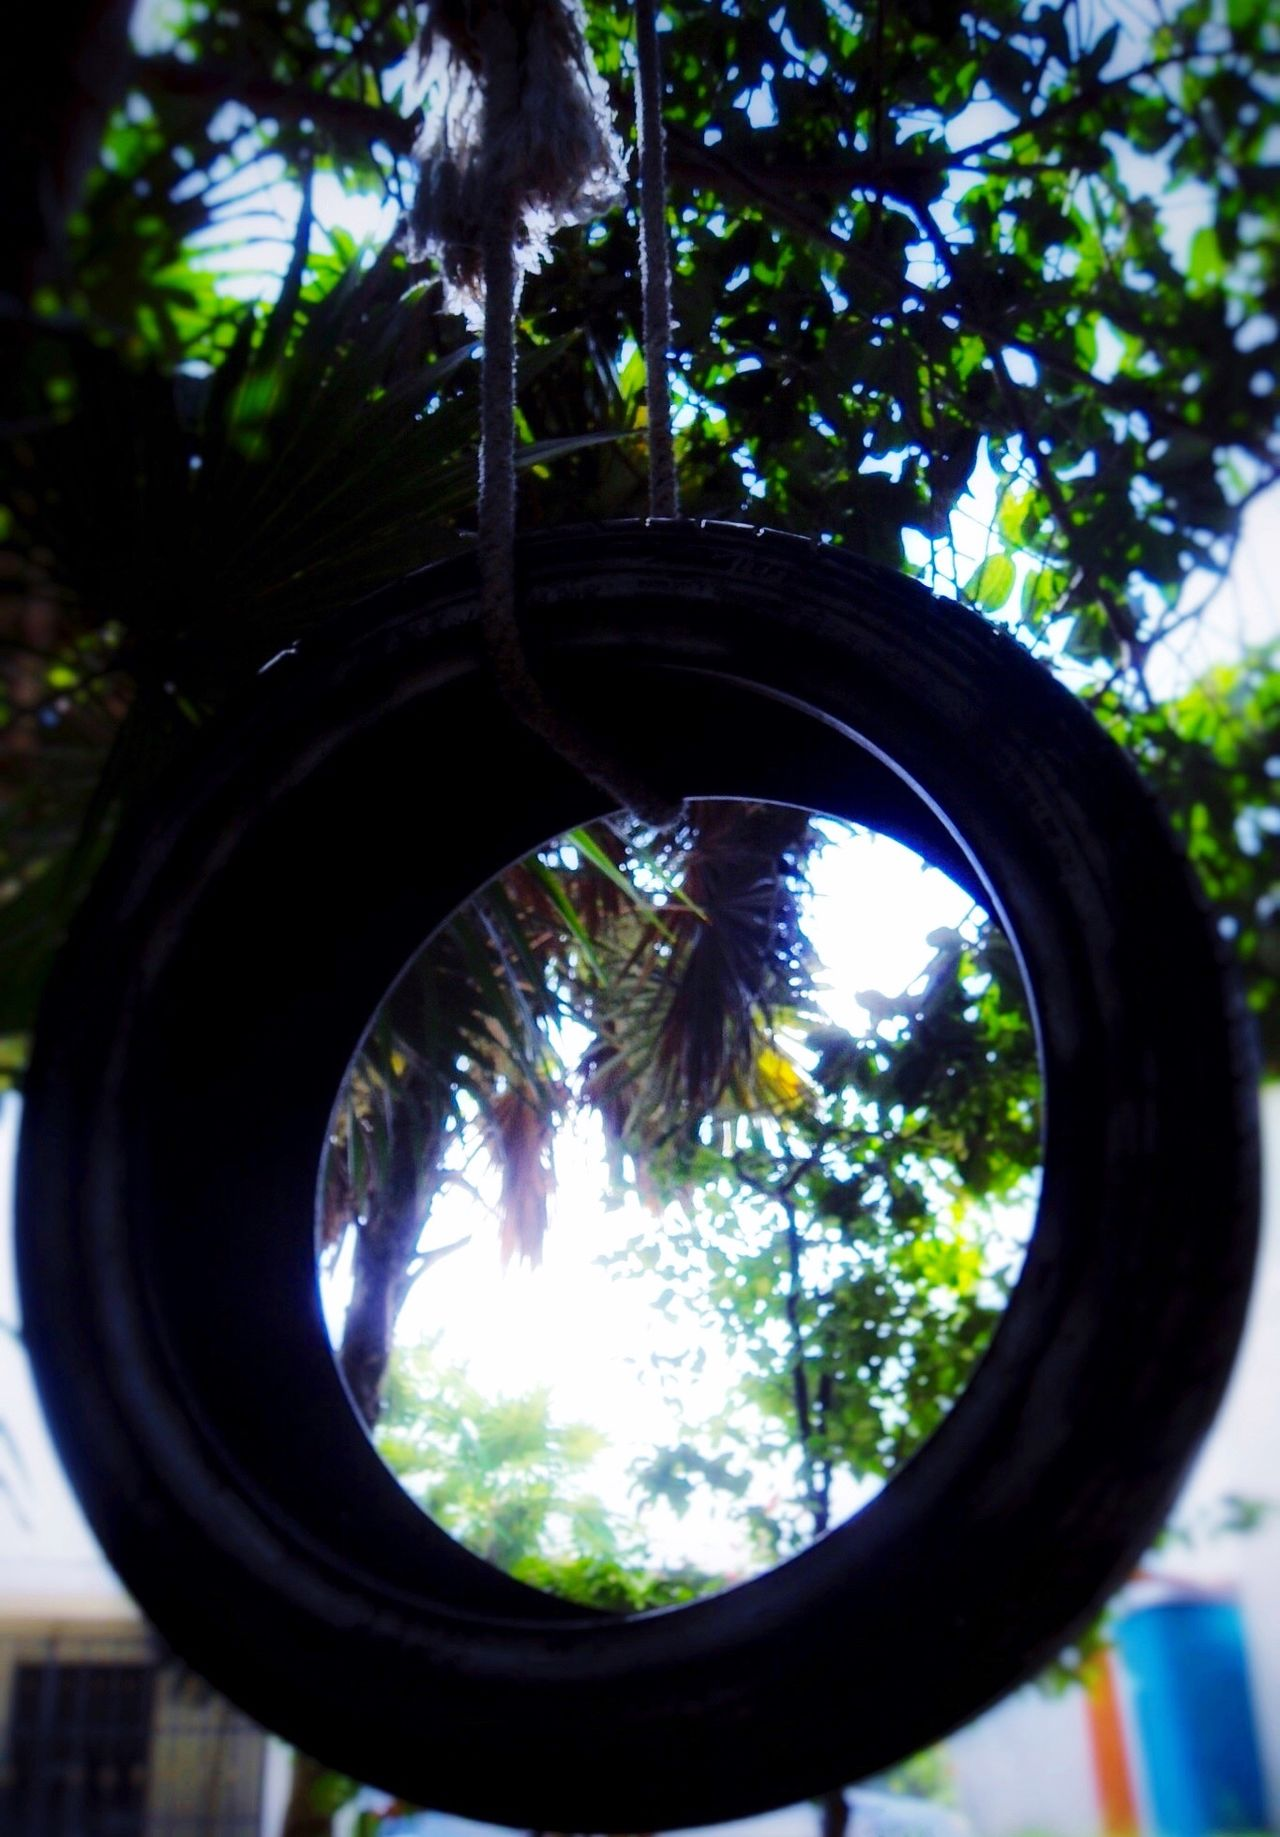 Tyre Tire Swing Columpio Llanta Rope Cuerda Tree Close-up Low Angle View Tree Trunk Nature Branch Recycle Recycling Recycled Materials Reciclaje EyeEm Nature Lover